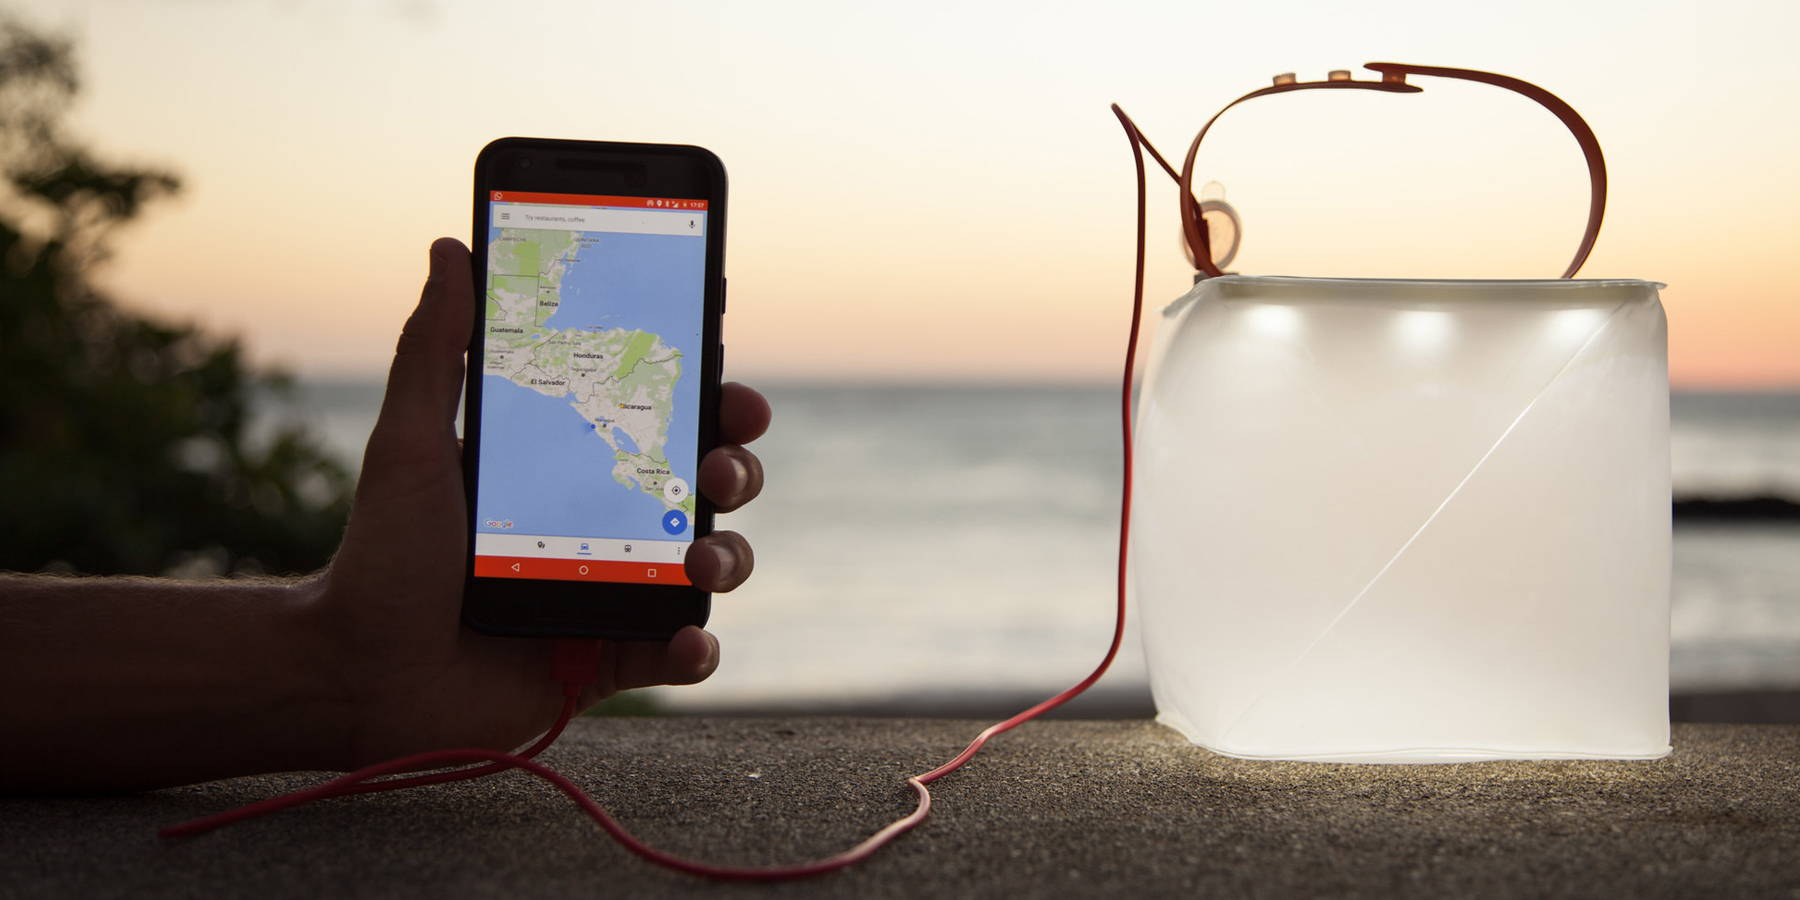 Charge your phone anywhere.